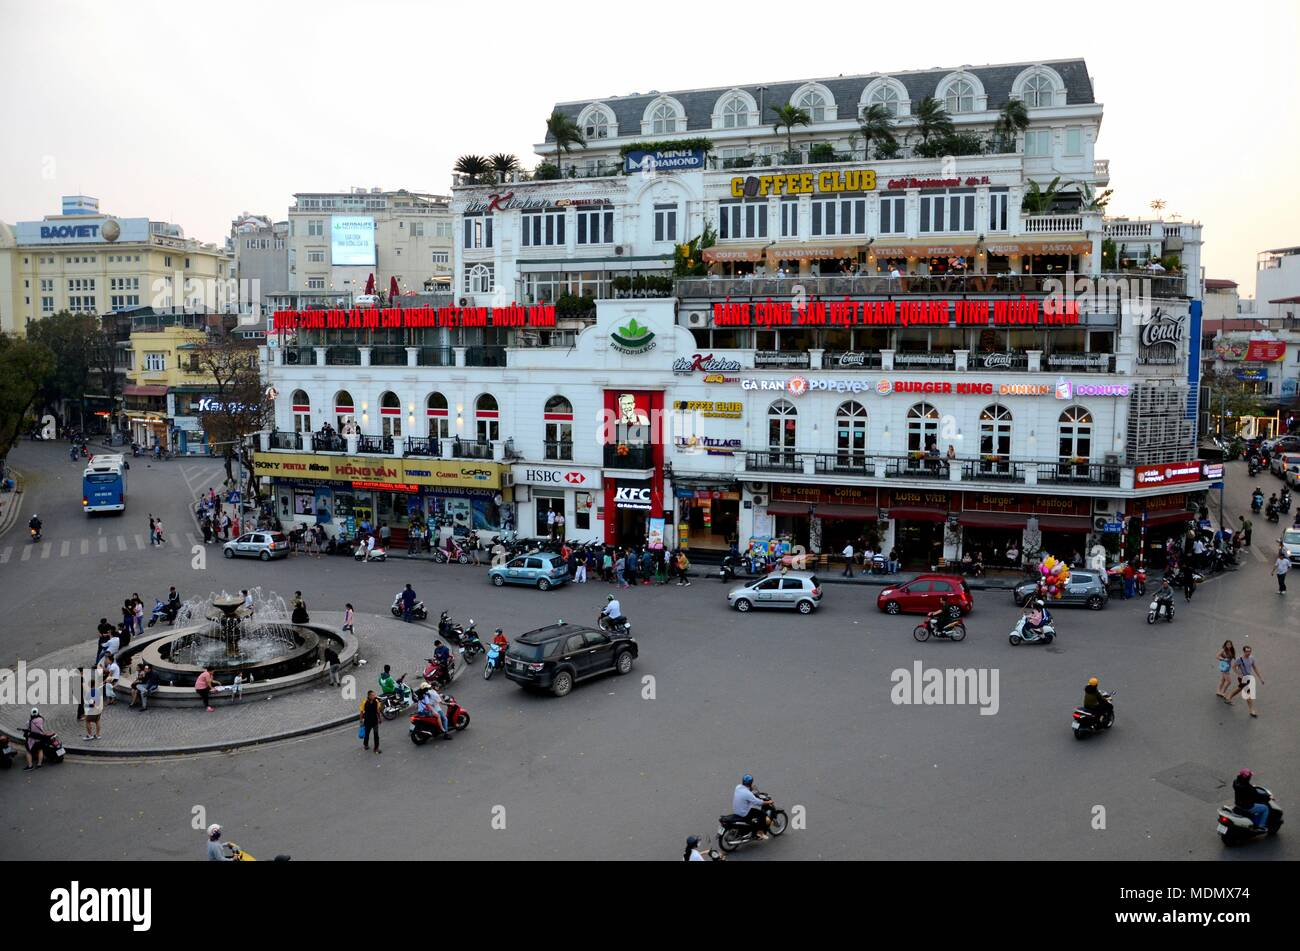 Old Colonial Building And Roundabout And Traffic Including Pedestrians With Fast Food Restaurants Hanoi S Old Quarter Vietnam Stock Photo Alamy